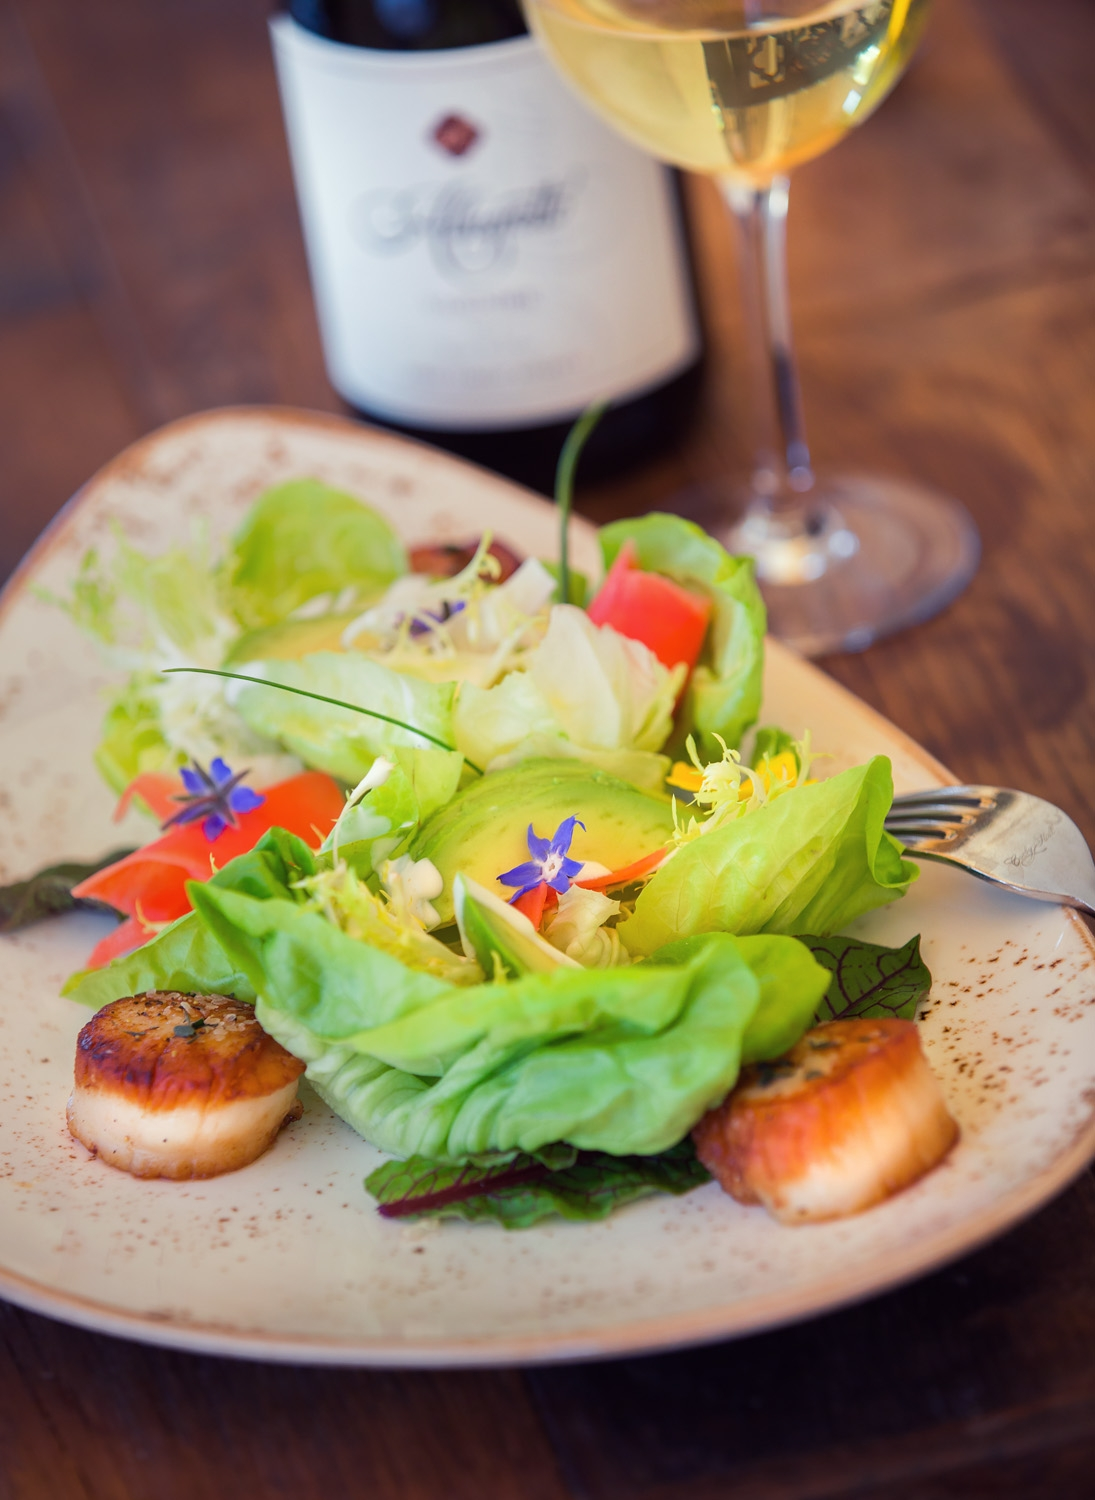 Our scallop salad prepared at our Cello Restaurant